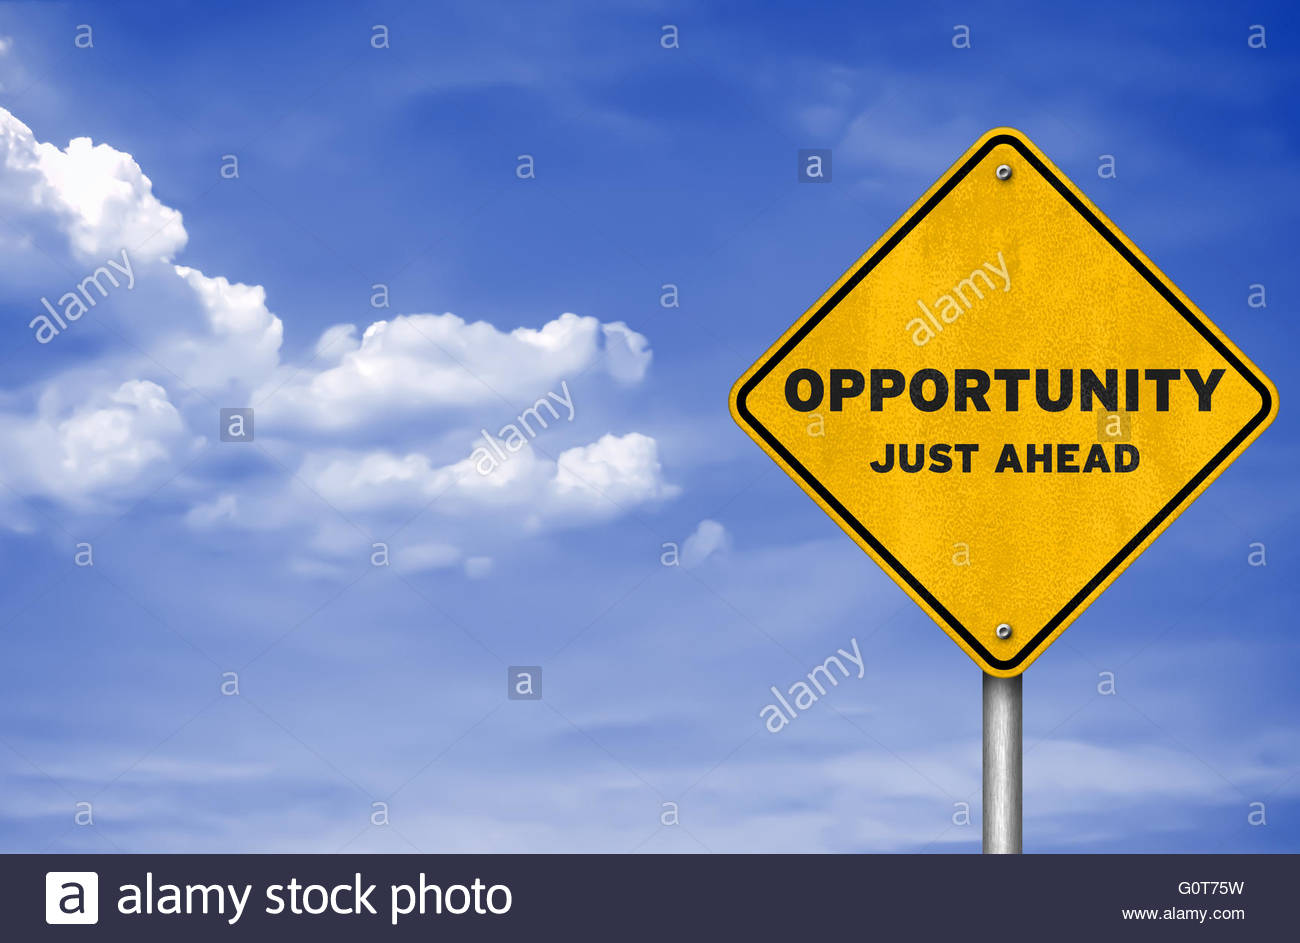 Opportunity just ahead - road sign concept - Stock Image